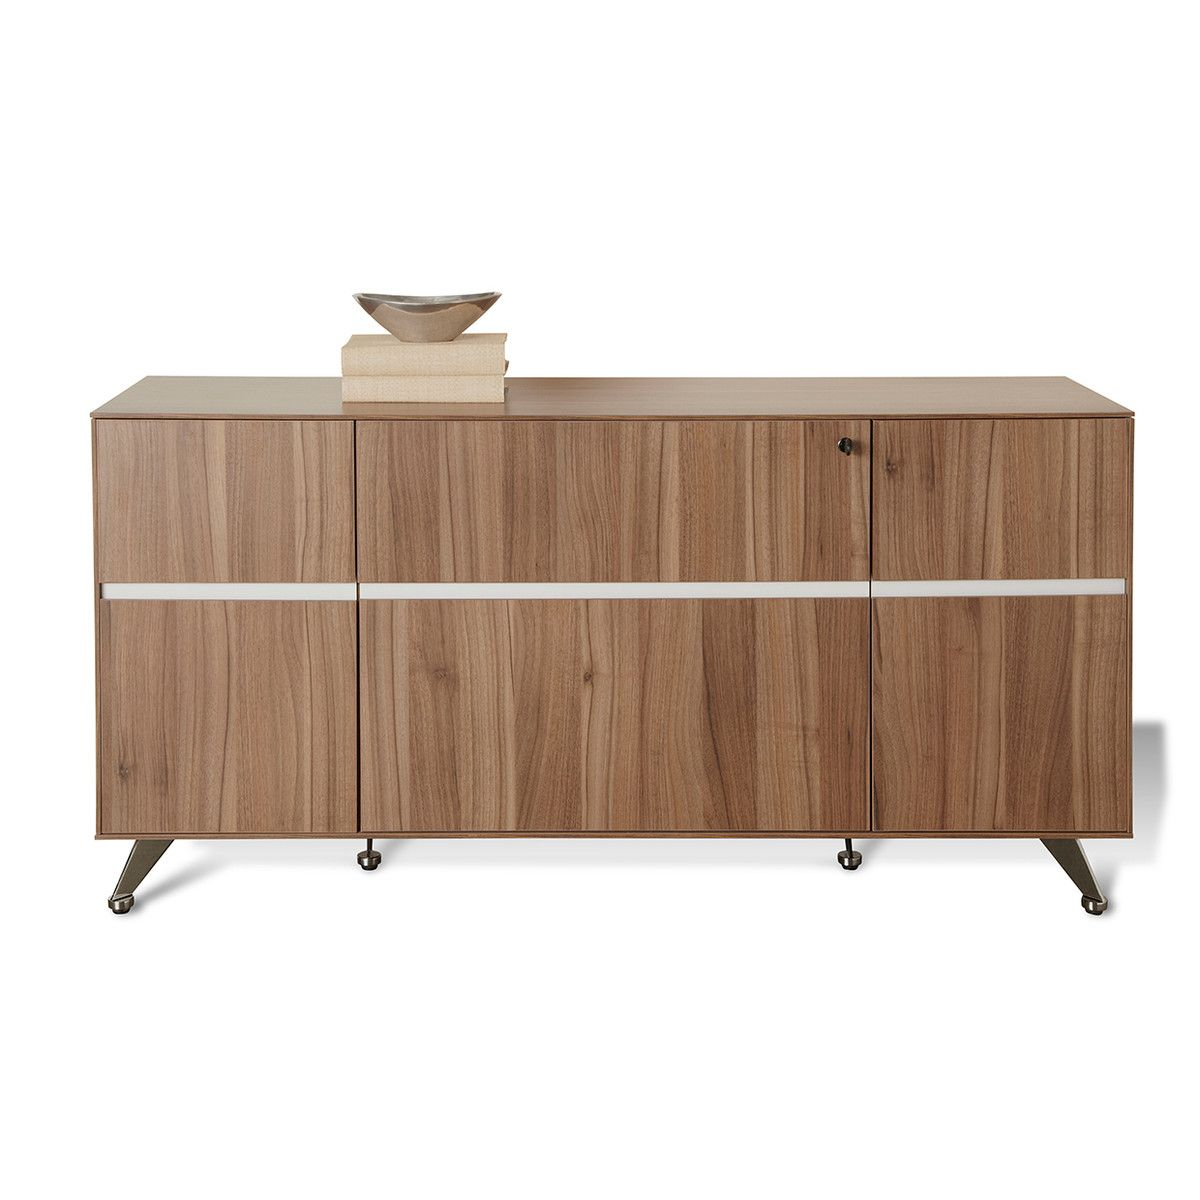 Storage credenza for living dining room living and dining